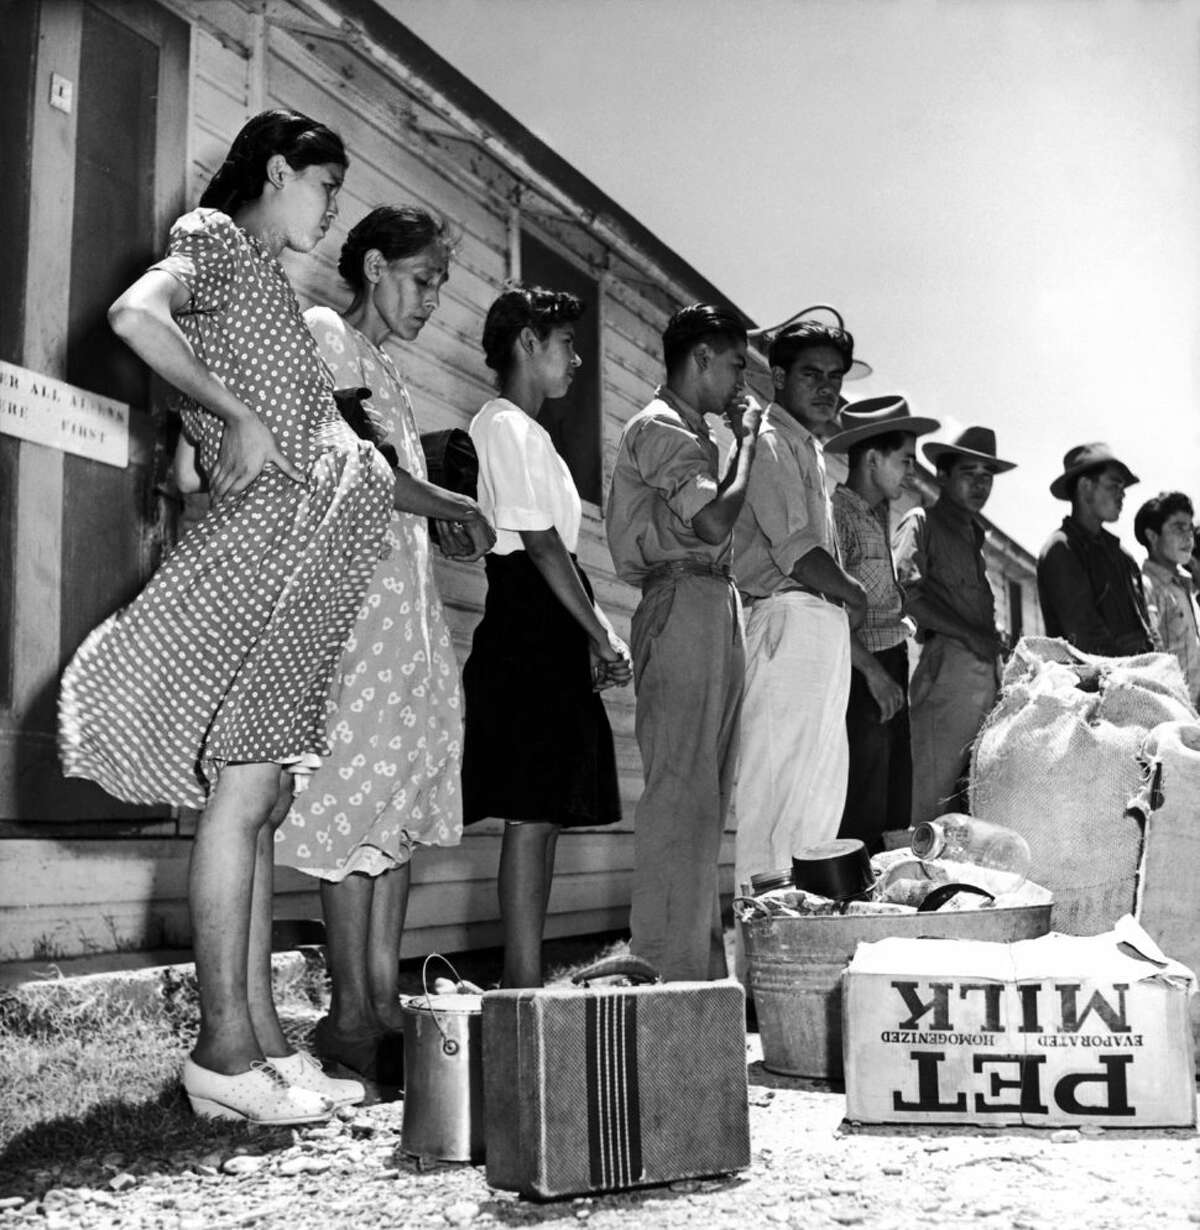 Migrants, including a pregnant woman, wait for inspection to cross the U.S.-Mexico border, circa 1950s.